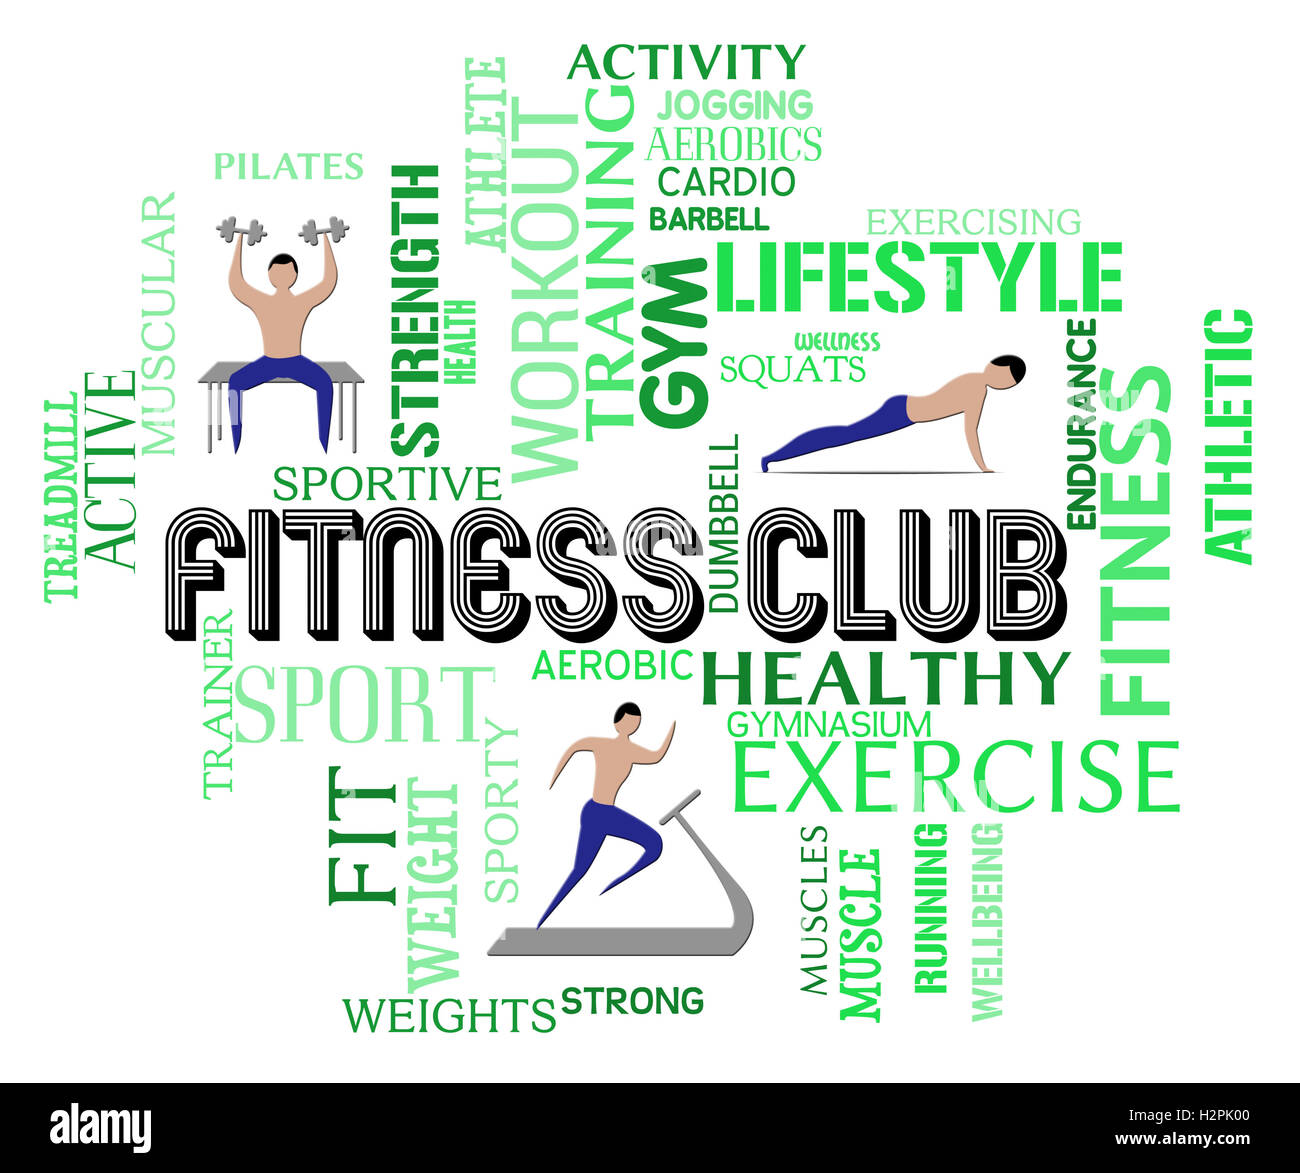 680ee2c8e7f Fitness Club Meaning Working Out Gym Membership Stock Photo ...